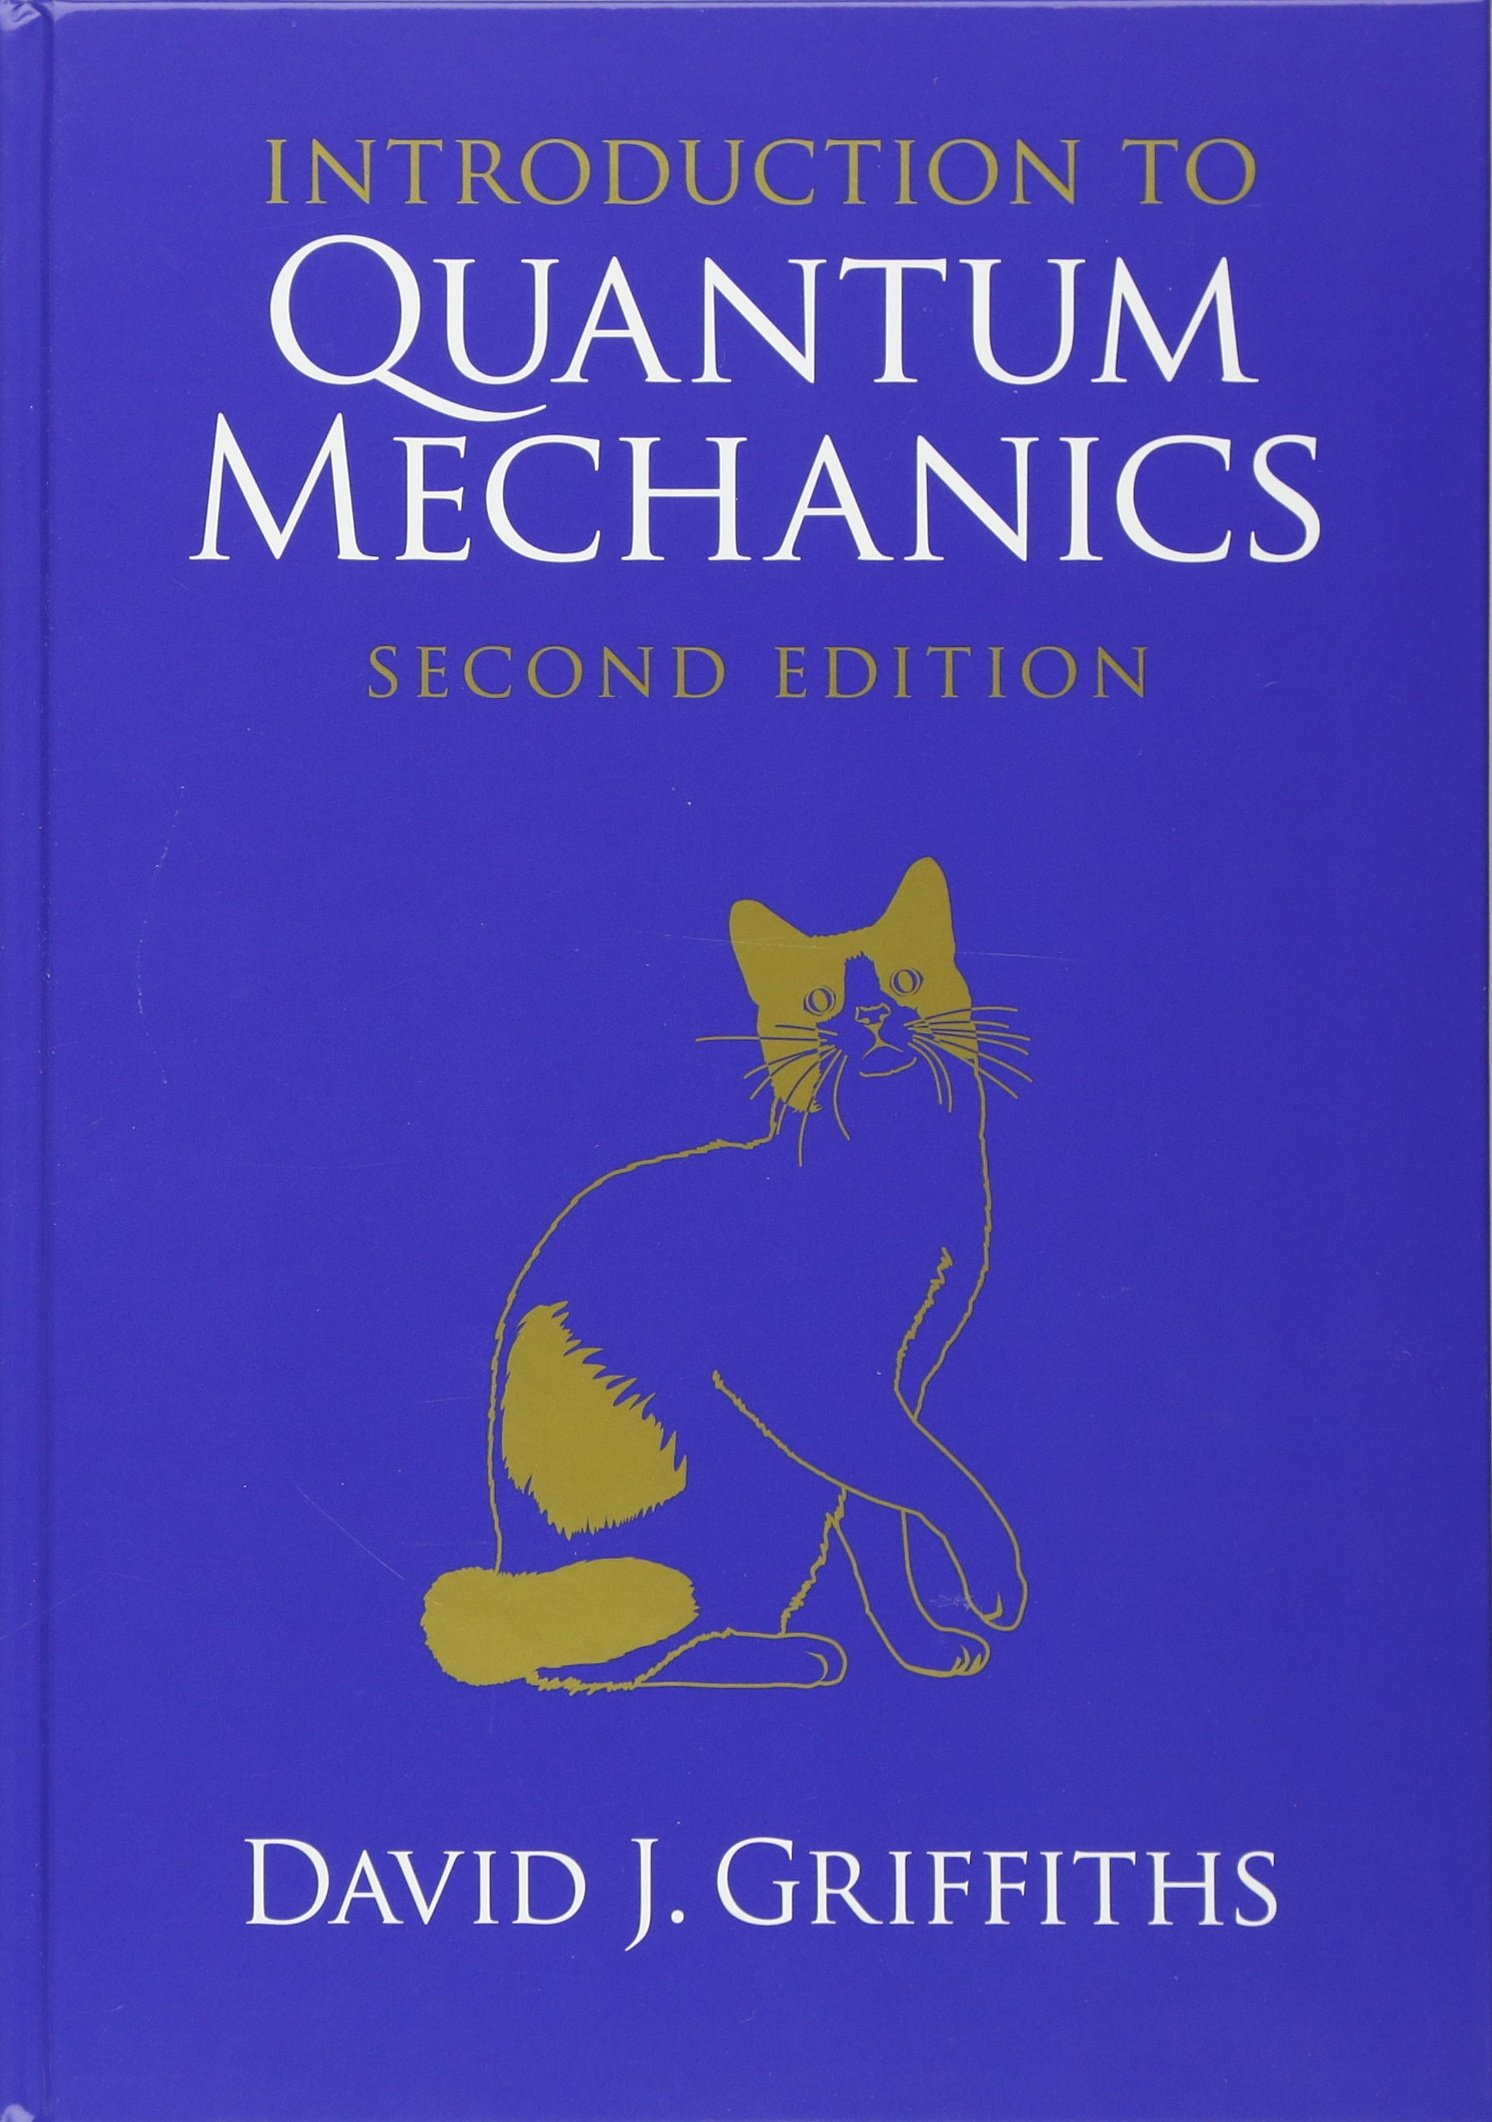 Introduction to Quantum Mechanics I/II